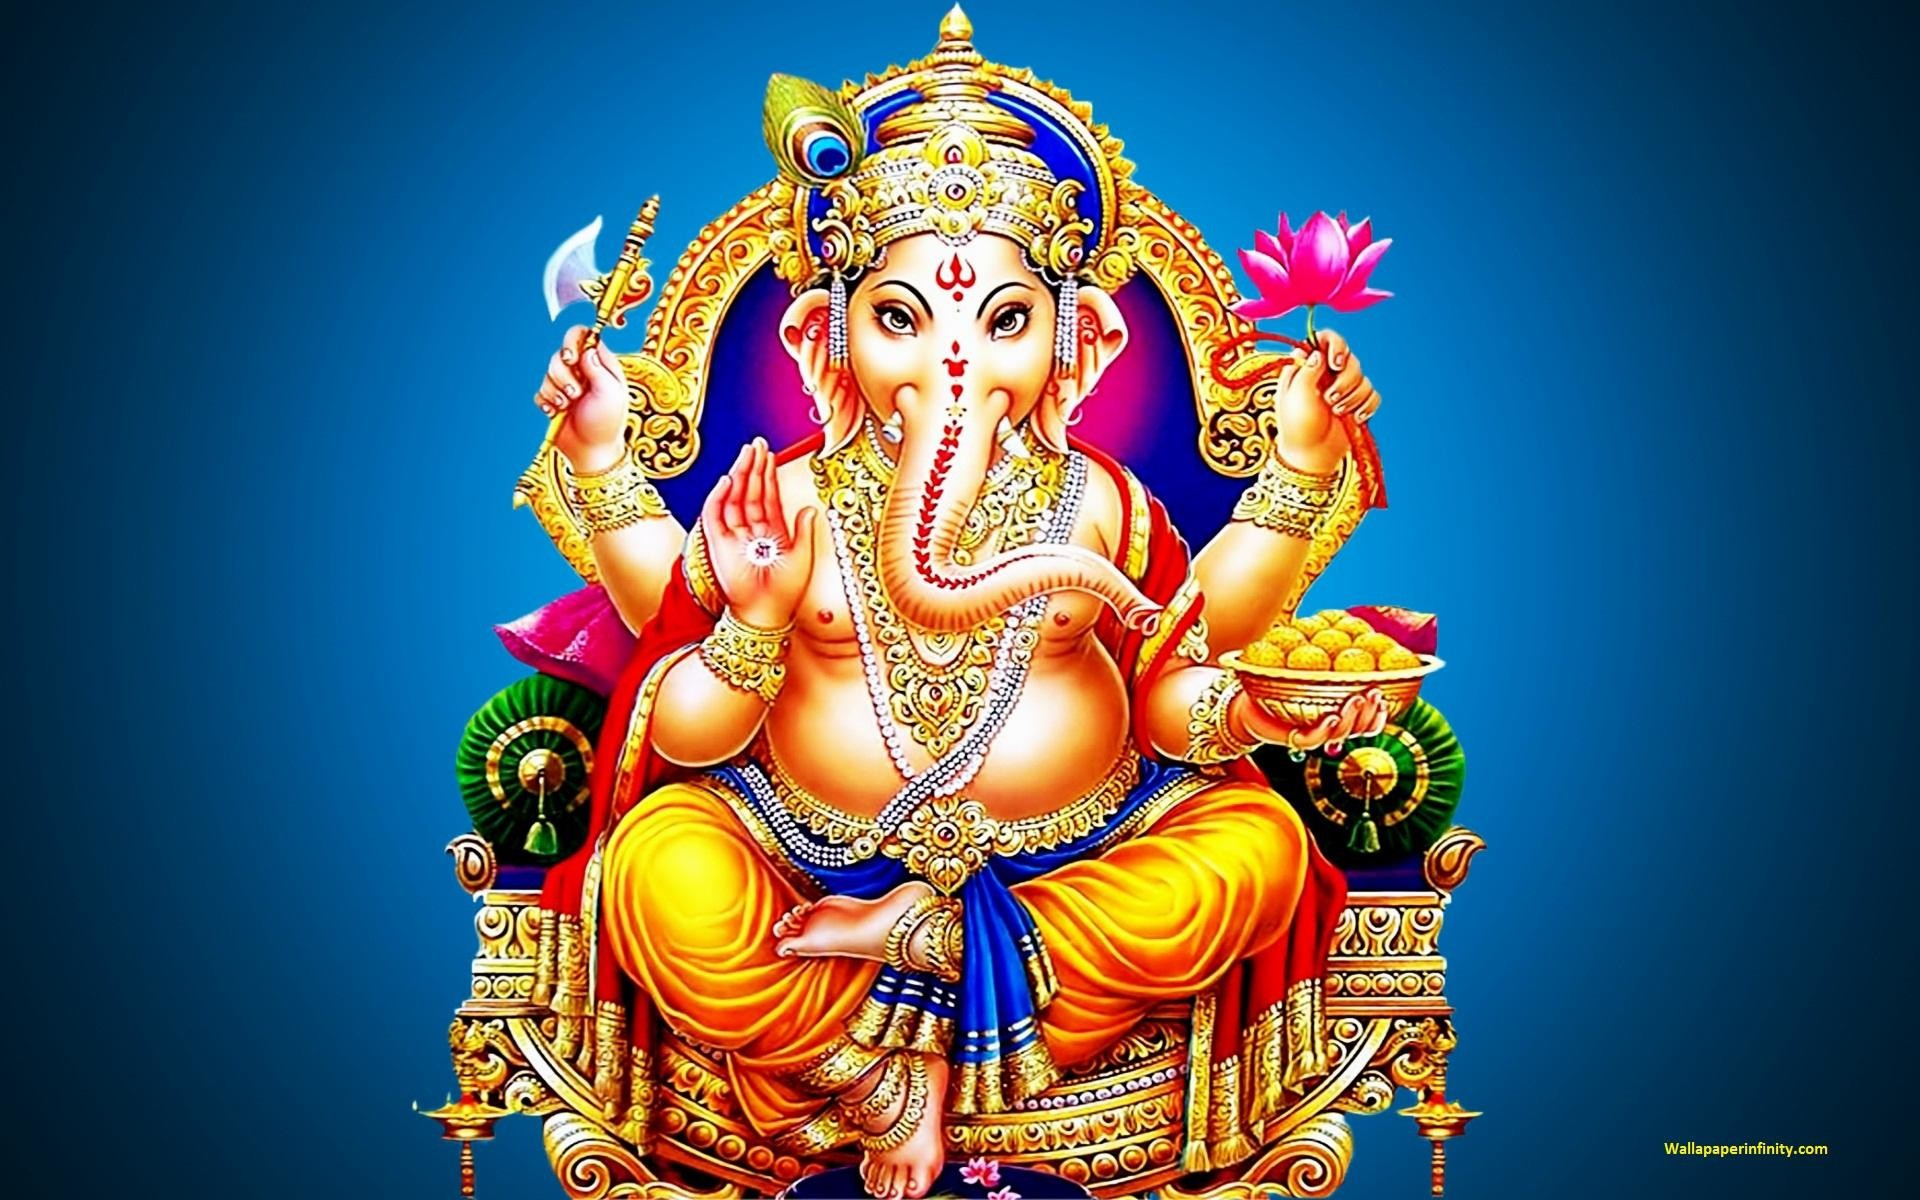 pictures of lord ganesha wallpapers 64 images